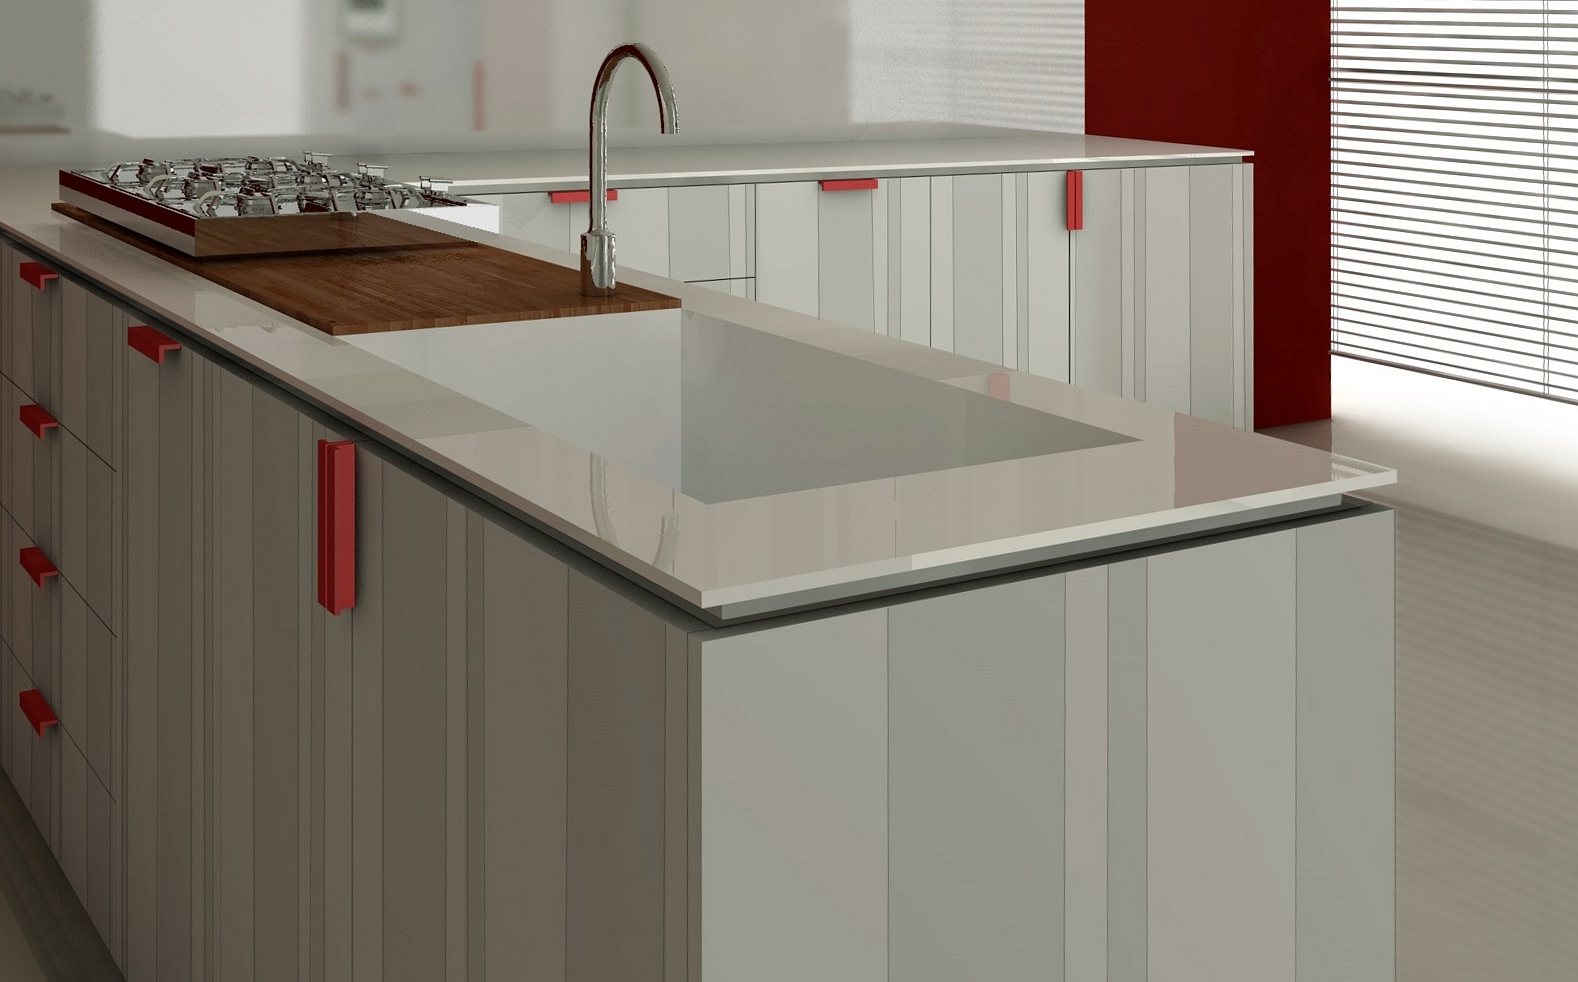 Kitchen System - Alessandro Villa architect